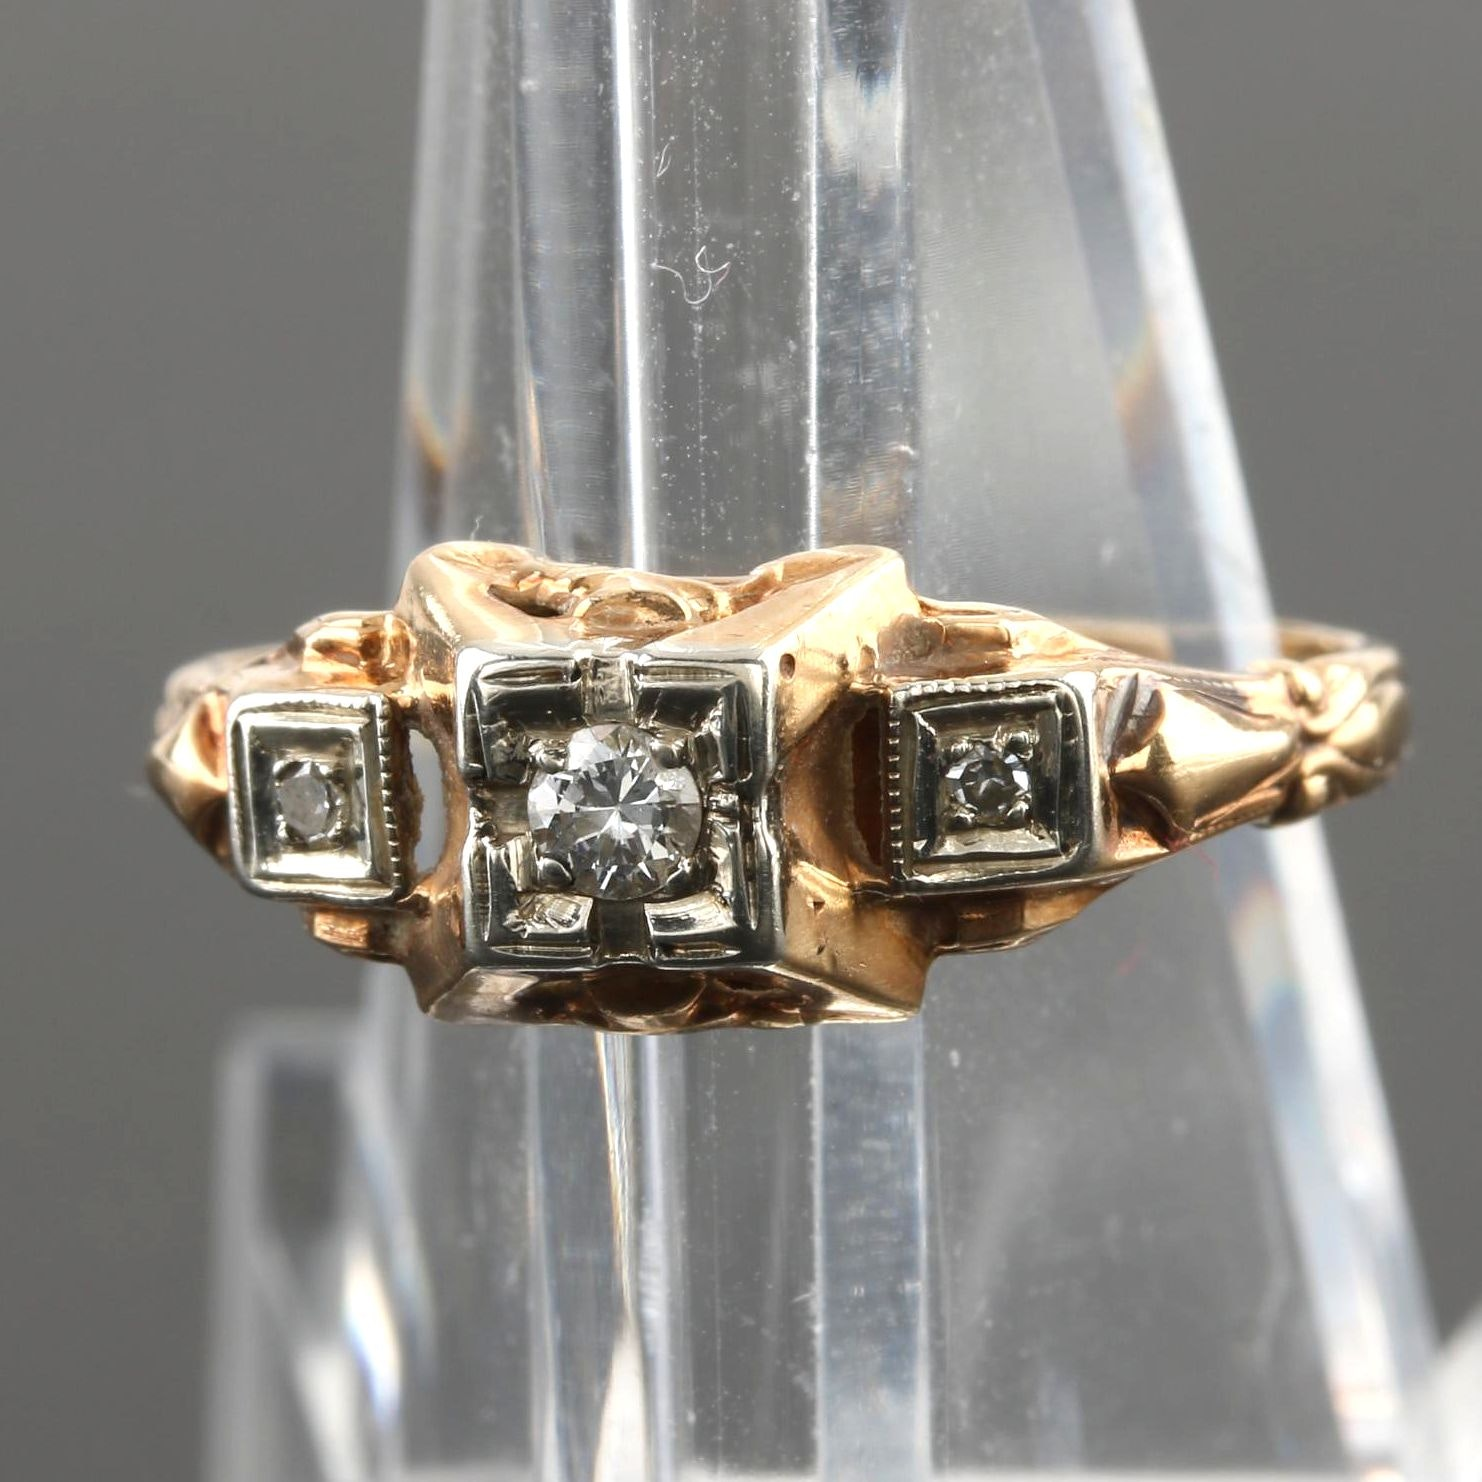 Late Edwardian Isador S. Sagorsky & Son 14K Yellow and White Gold Diamond Ring